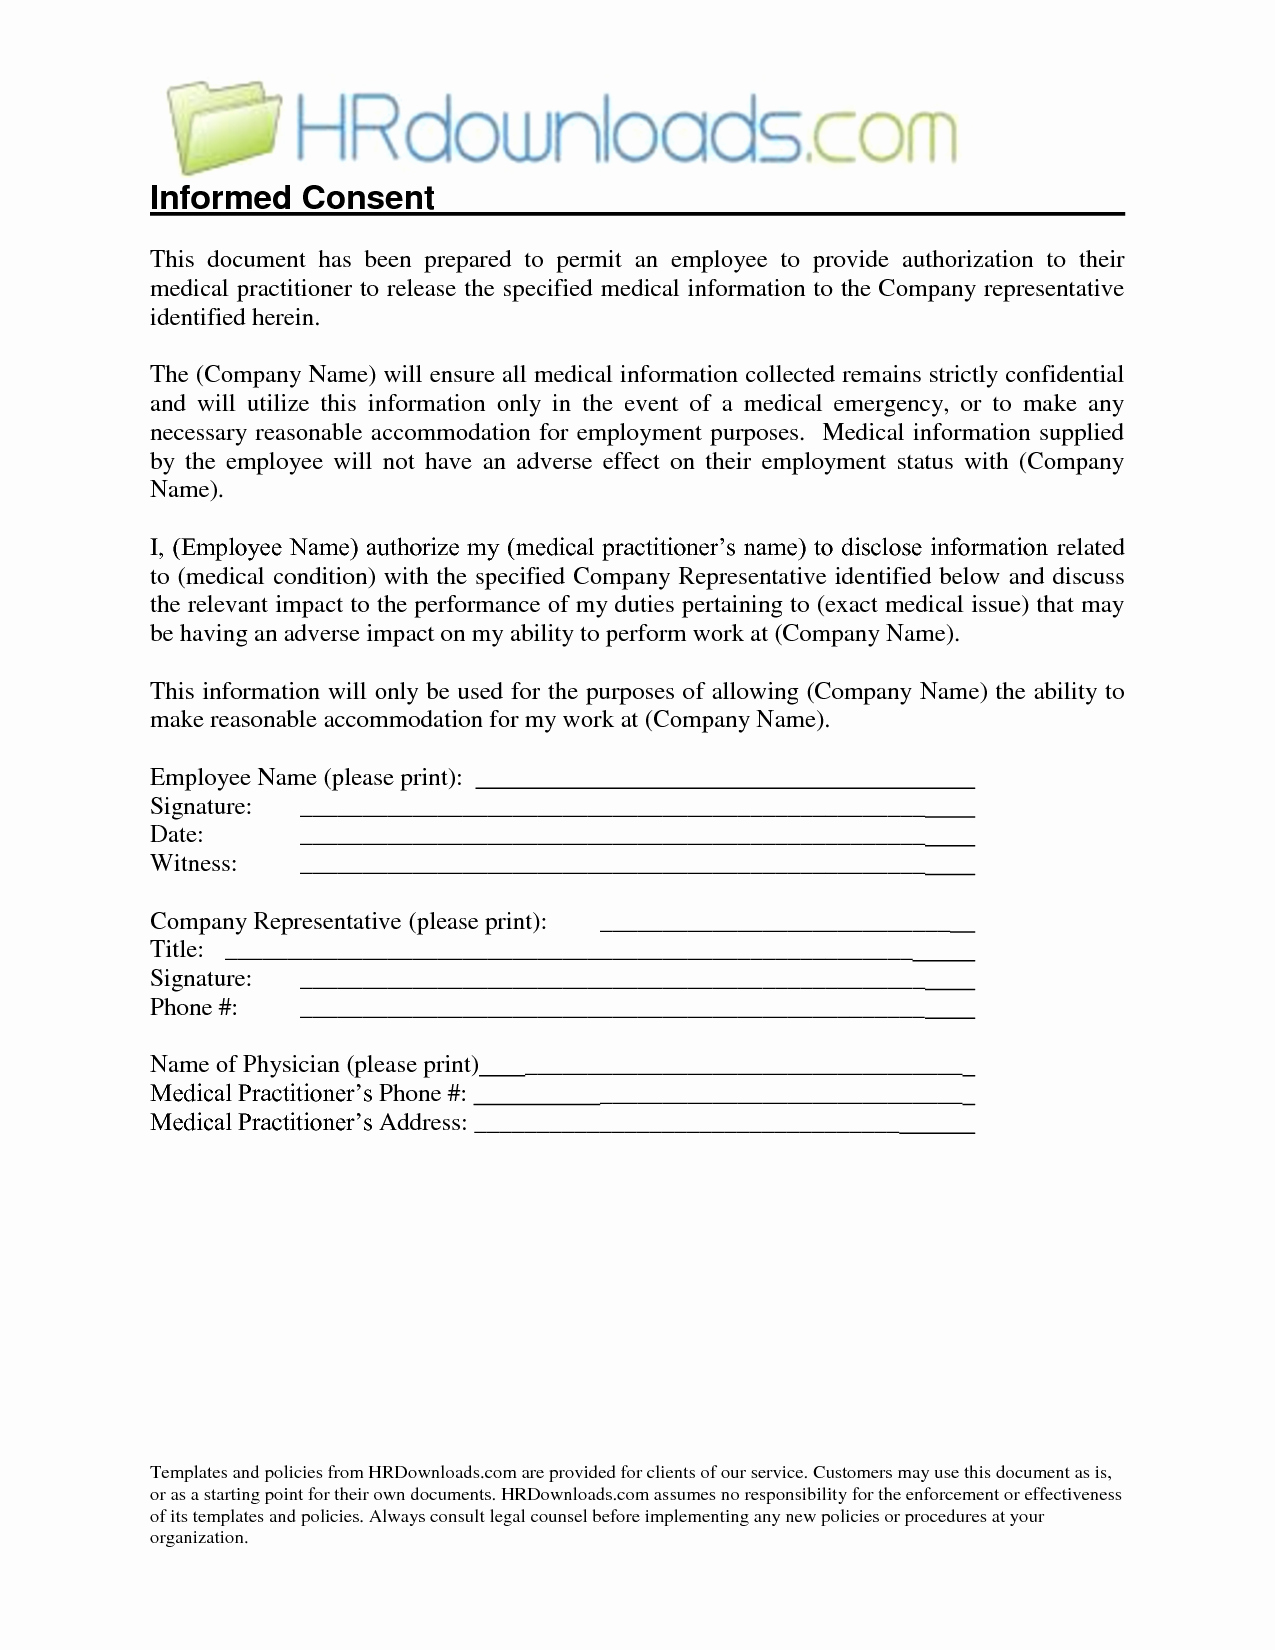 Medical Release form Template Inspirational Medical Release Information form Template